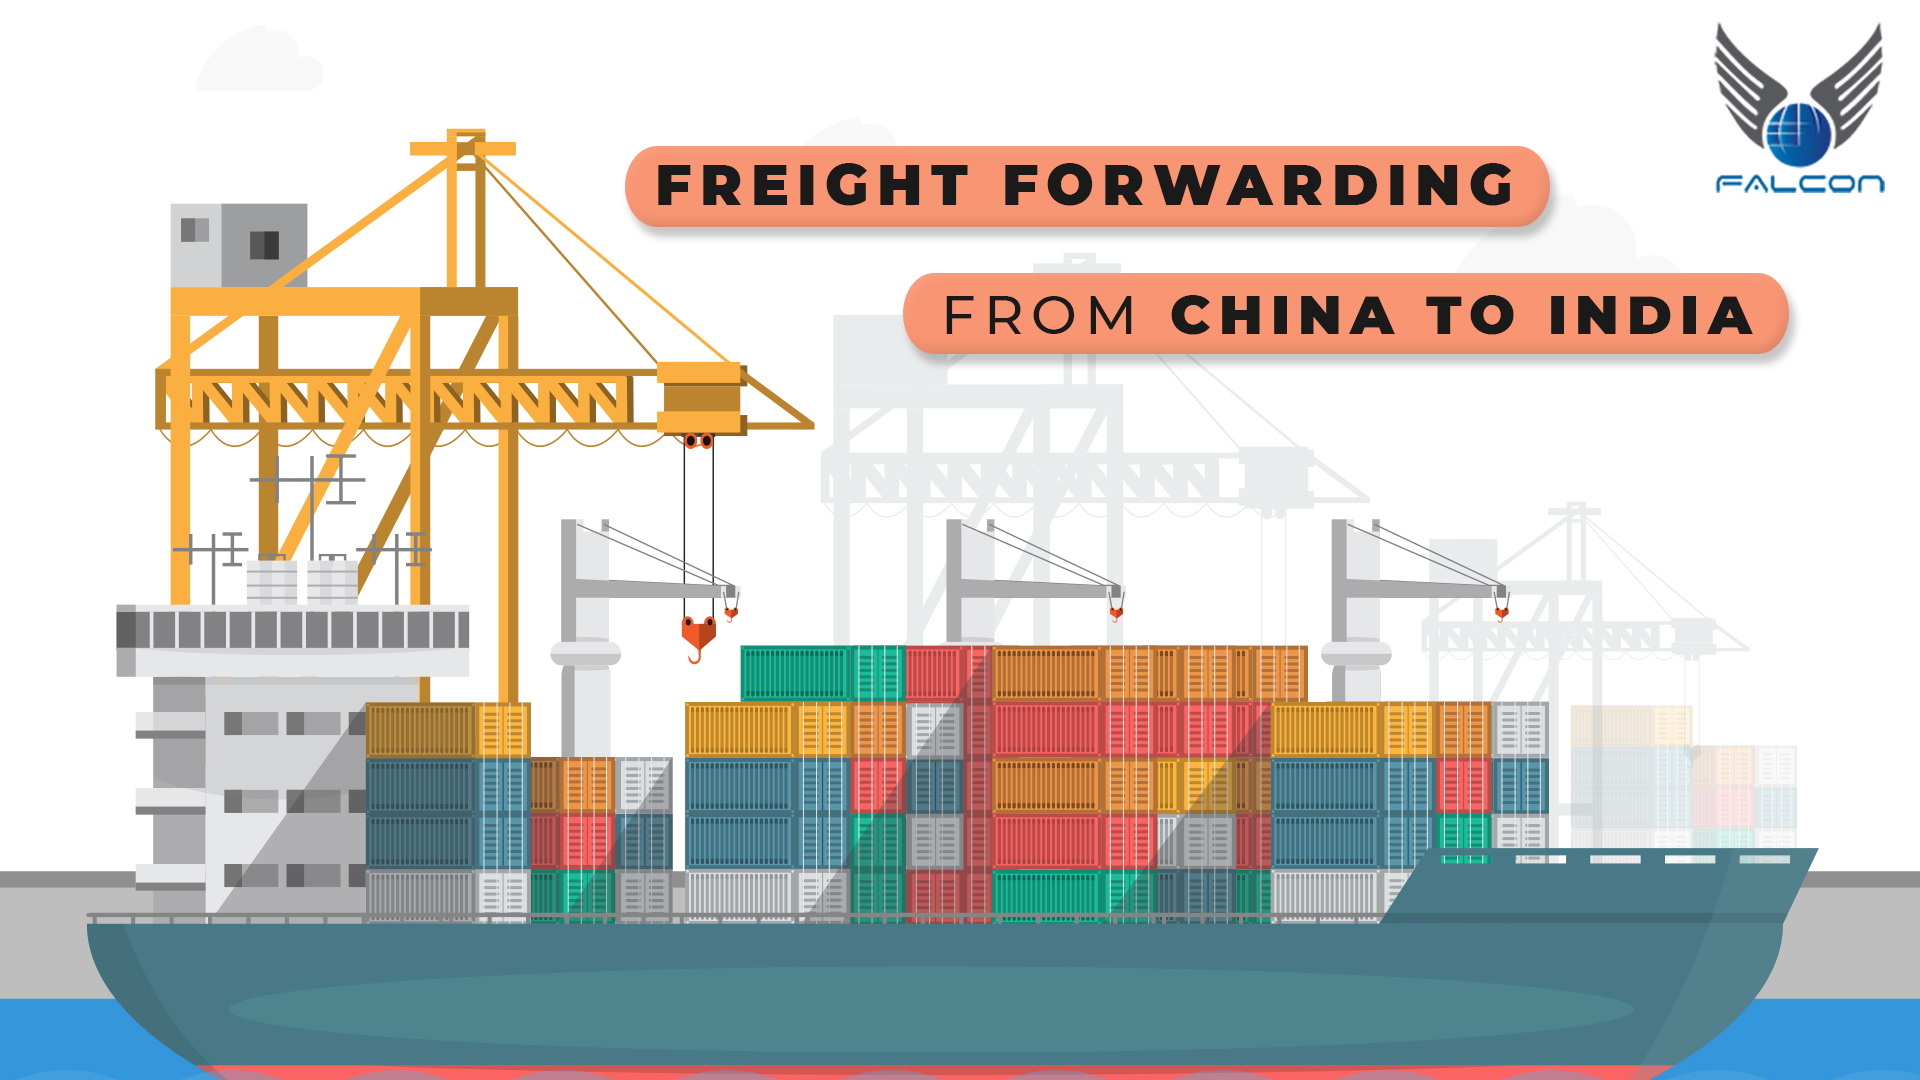 Freight forwarding from China to India